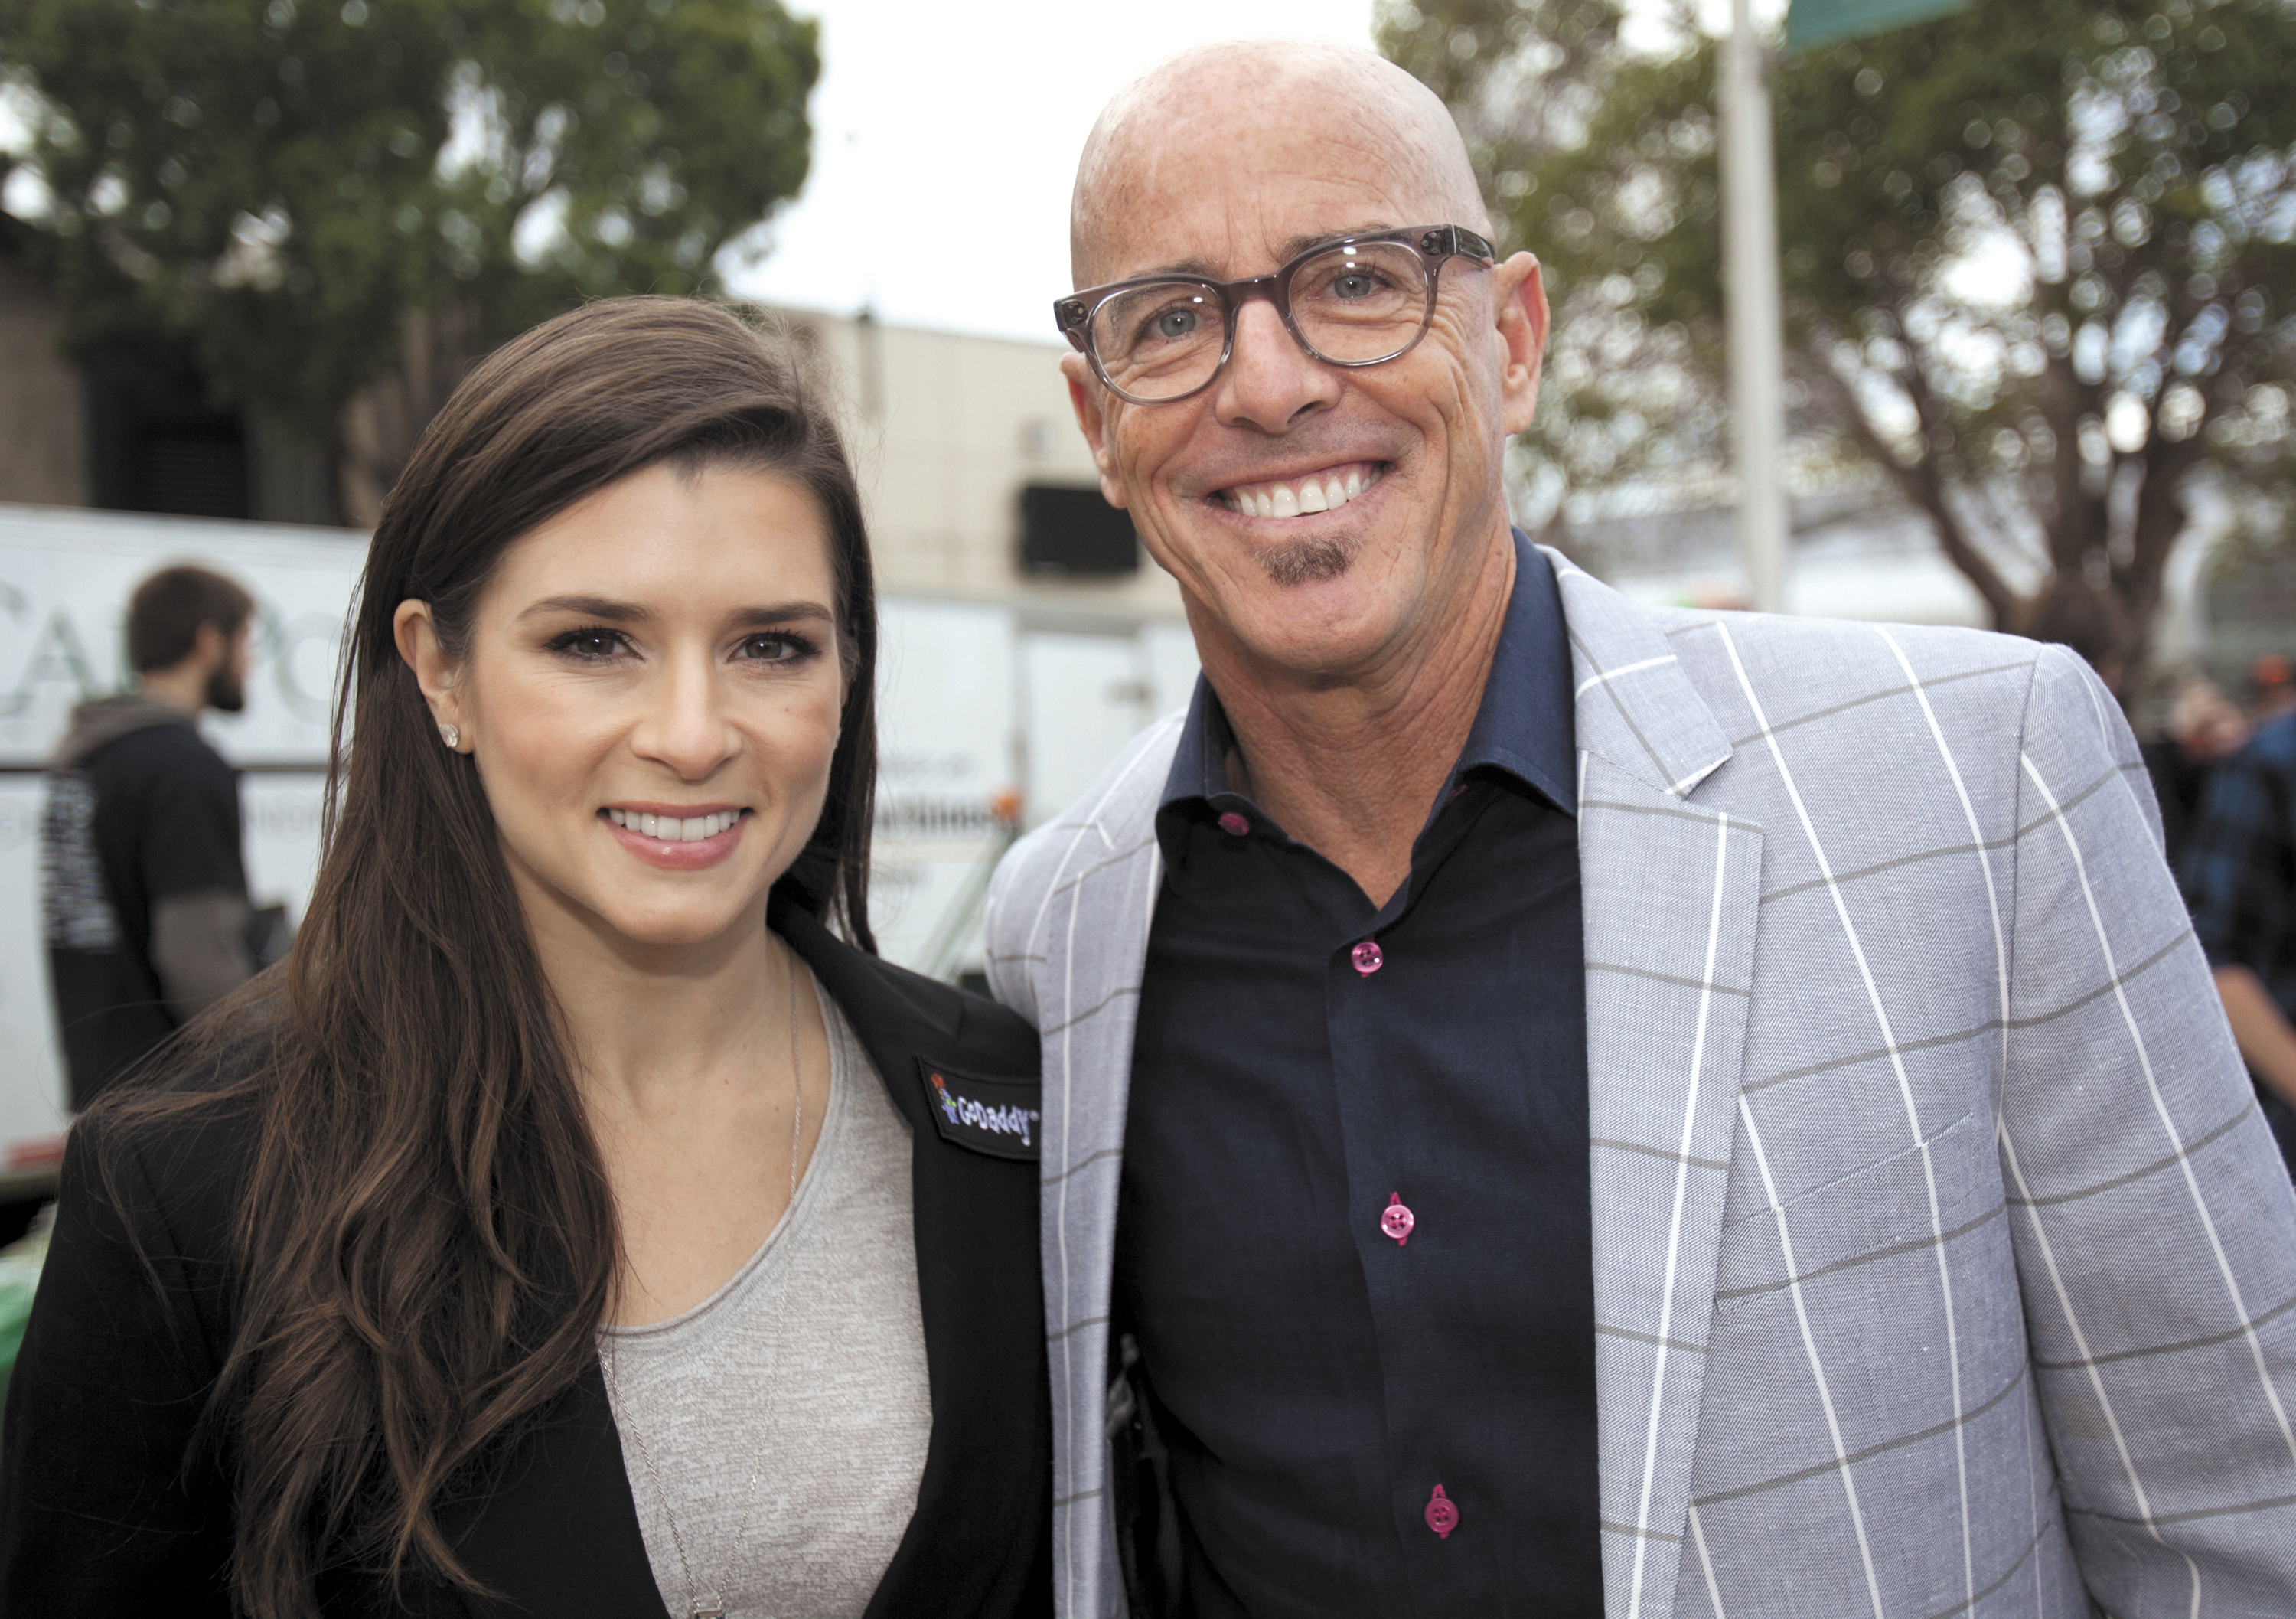 Danica Patrick, race car driver, and spokeswoman for GO Daddy, with Blake Irving, CEO of GoDaddy.